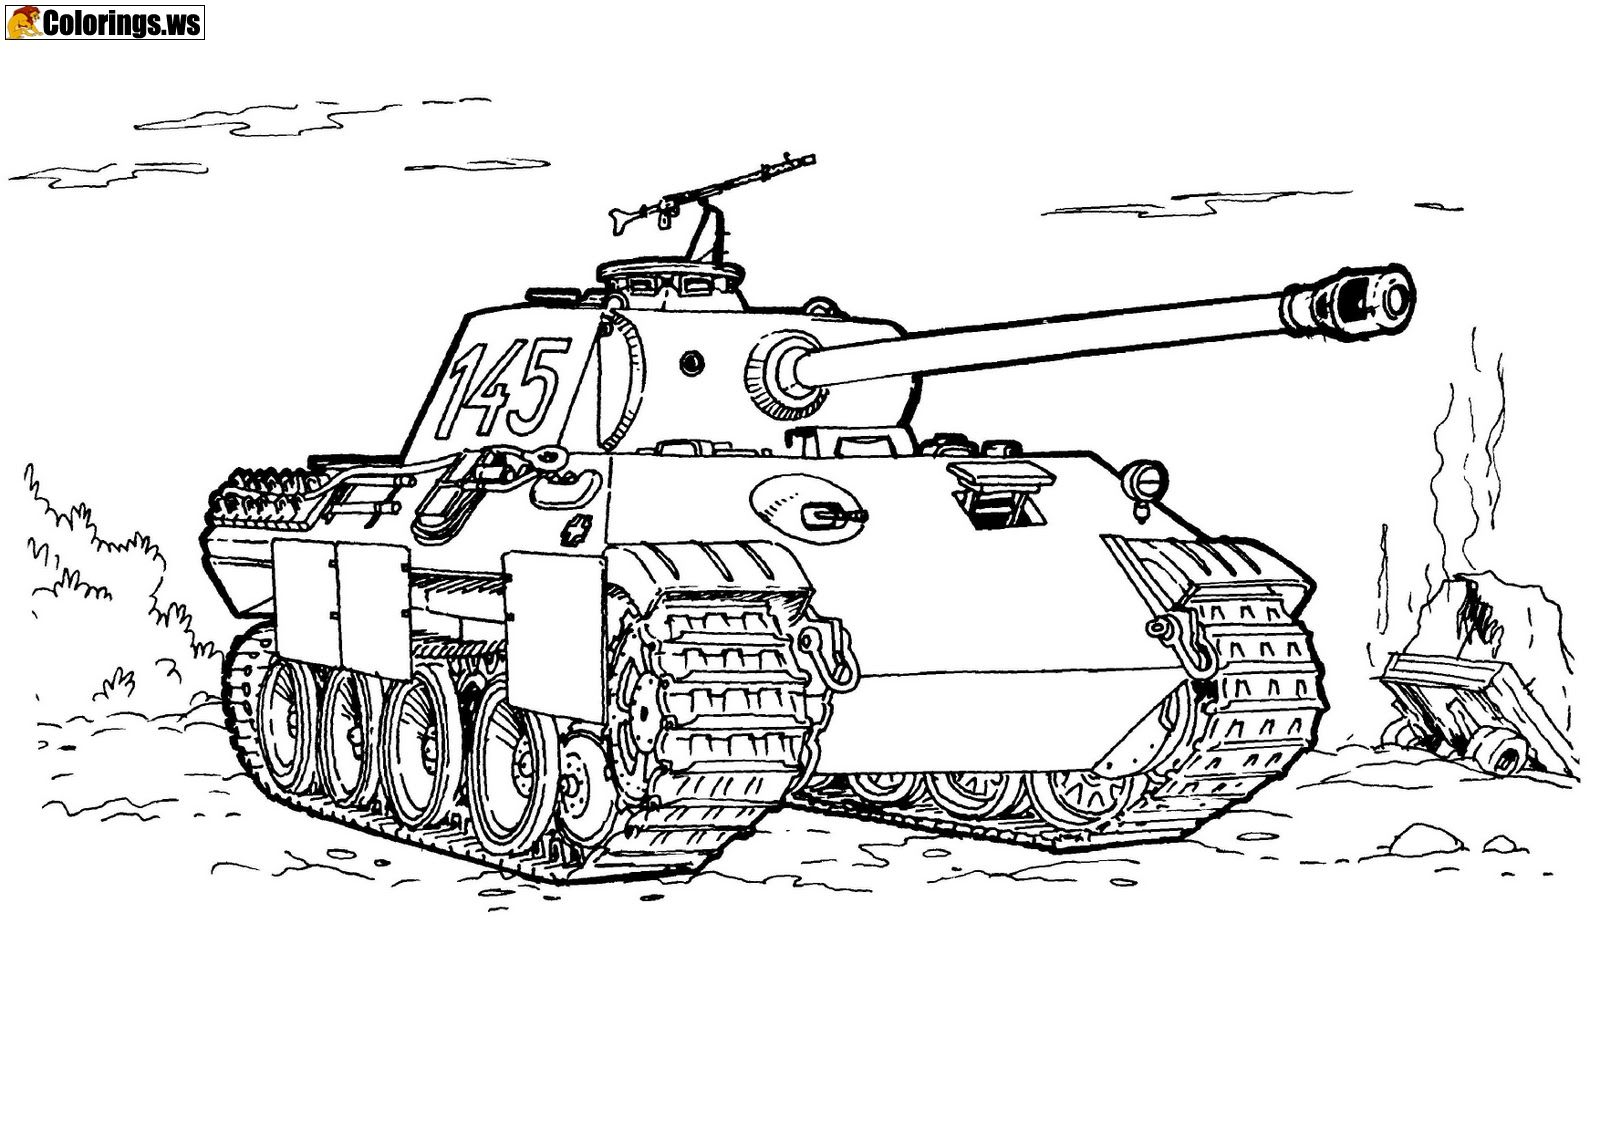 Gta 5 tank coloring page gta 5 coloring pages thats true the open game world gangster game was released in september 2013 with much marketing for the